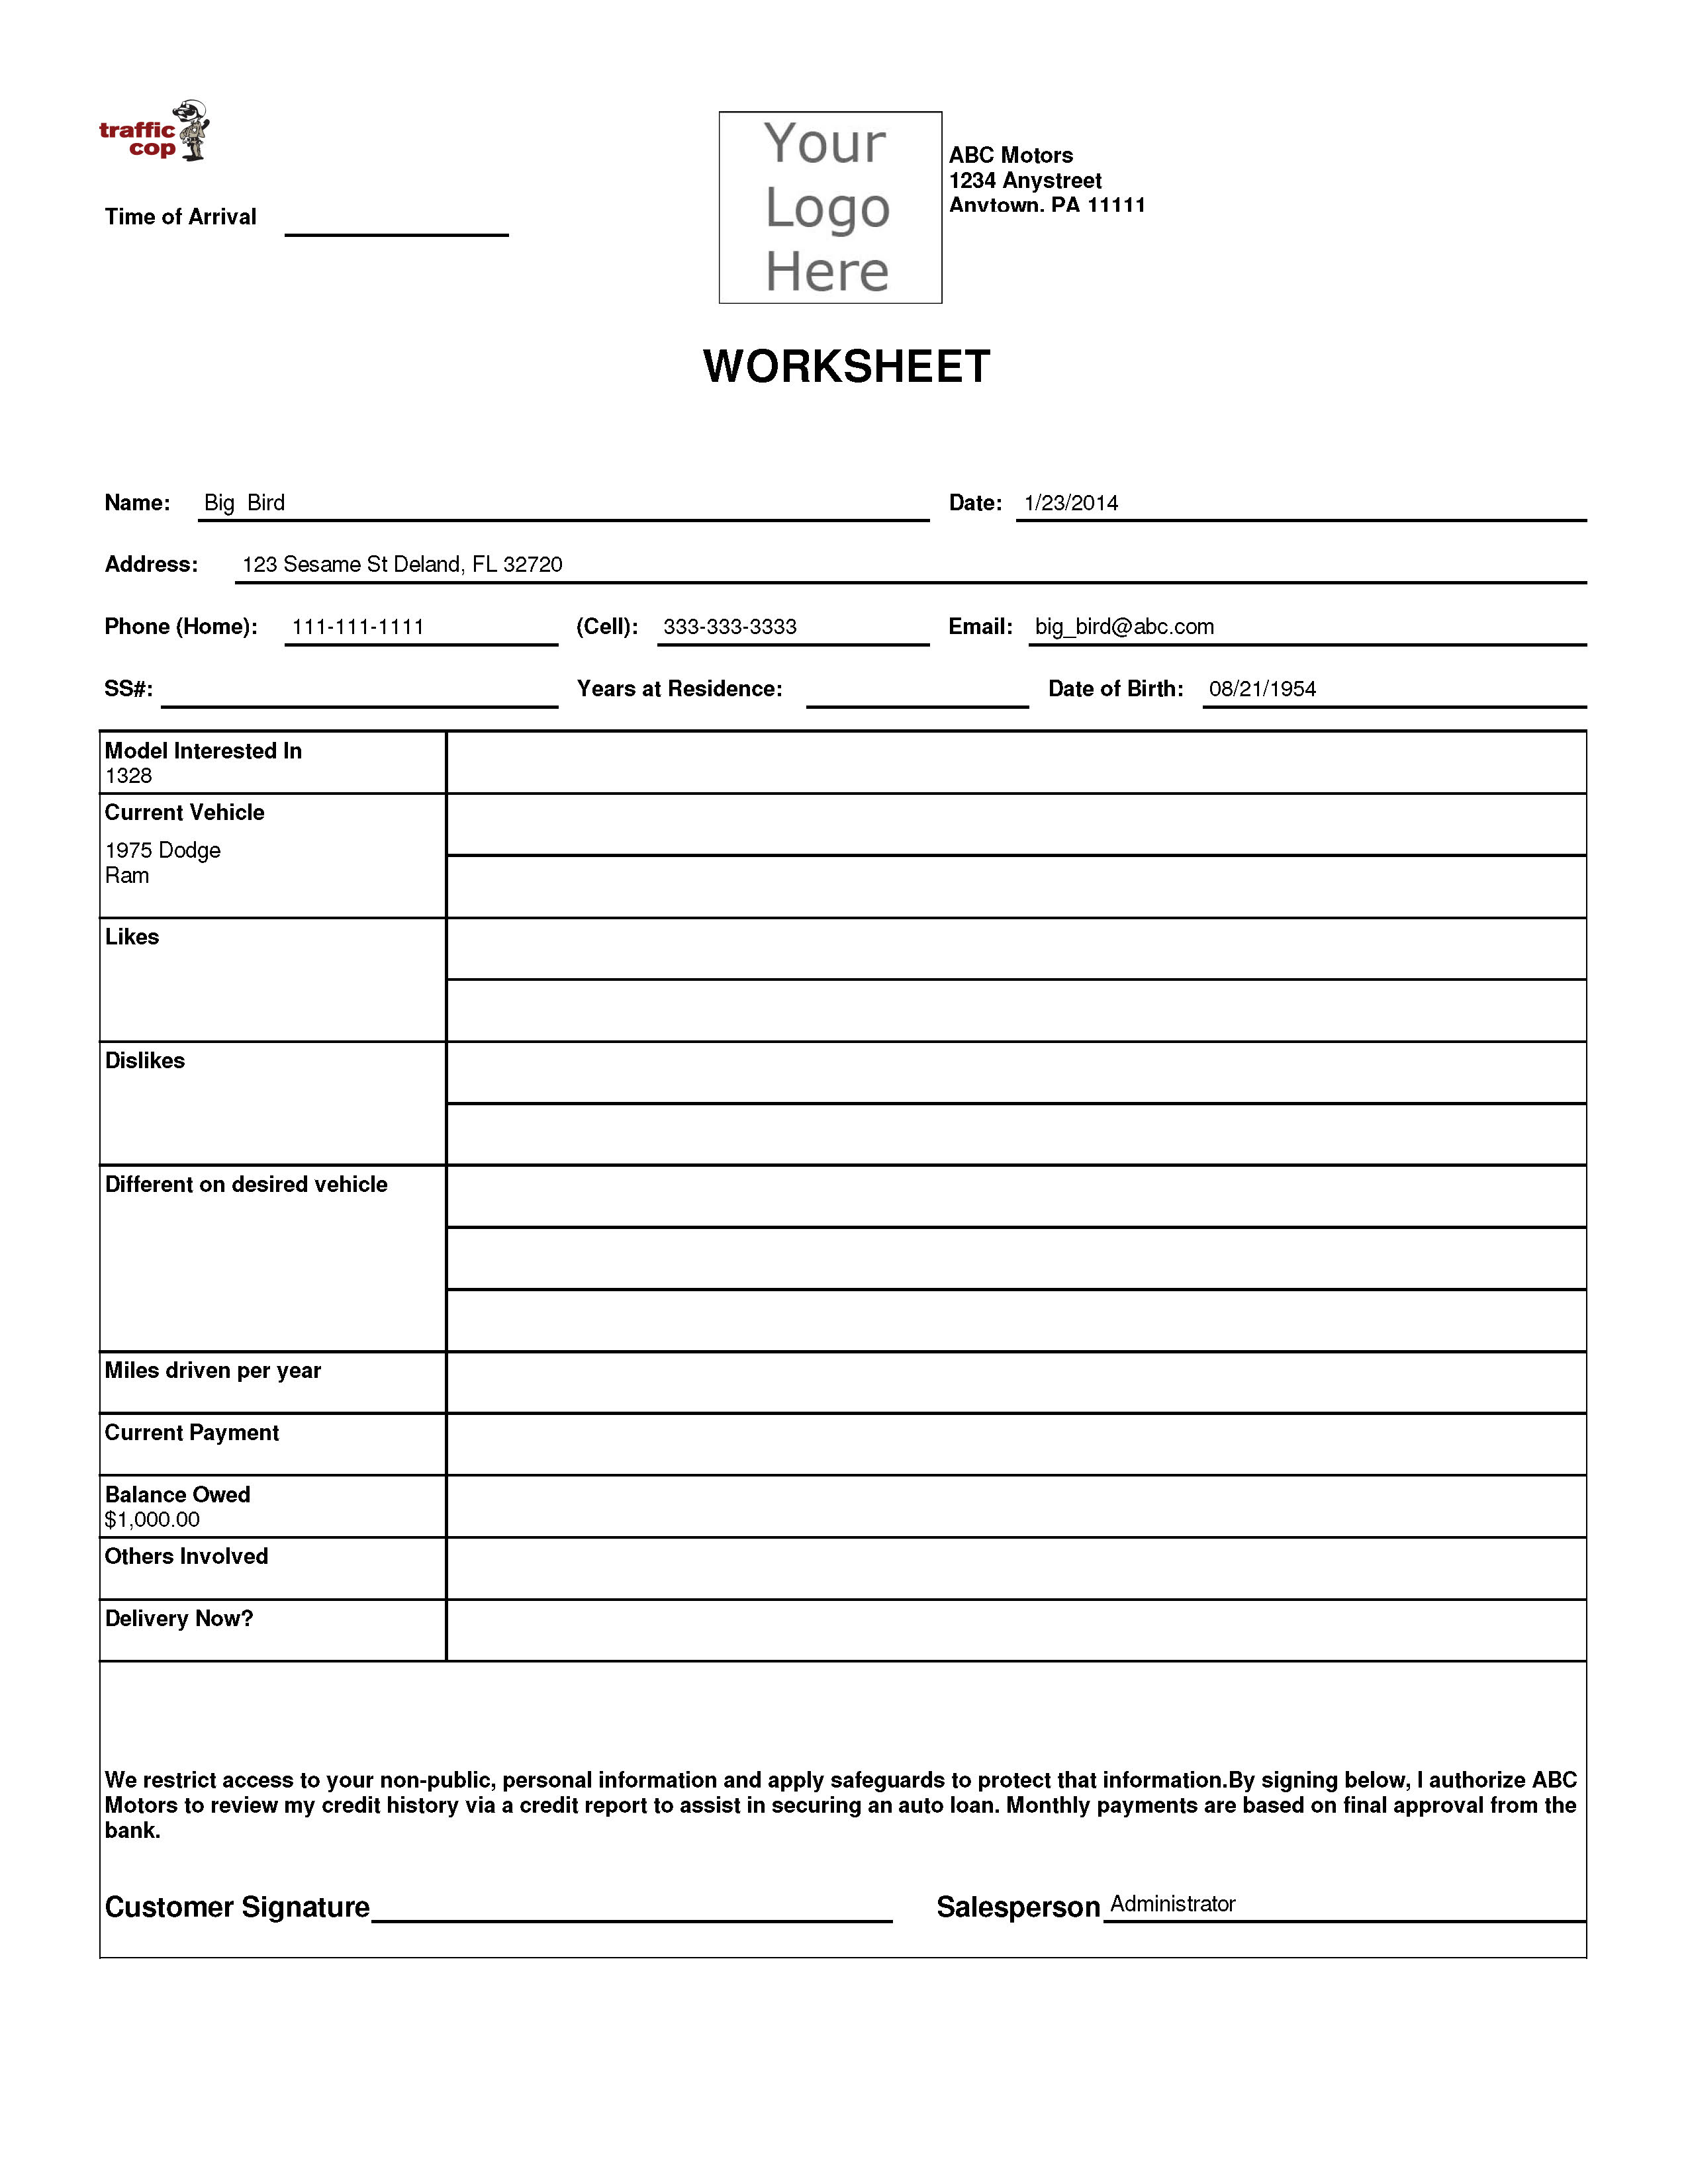 Worksheets Traffic Control